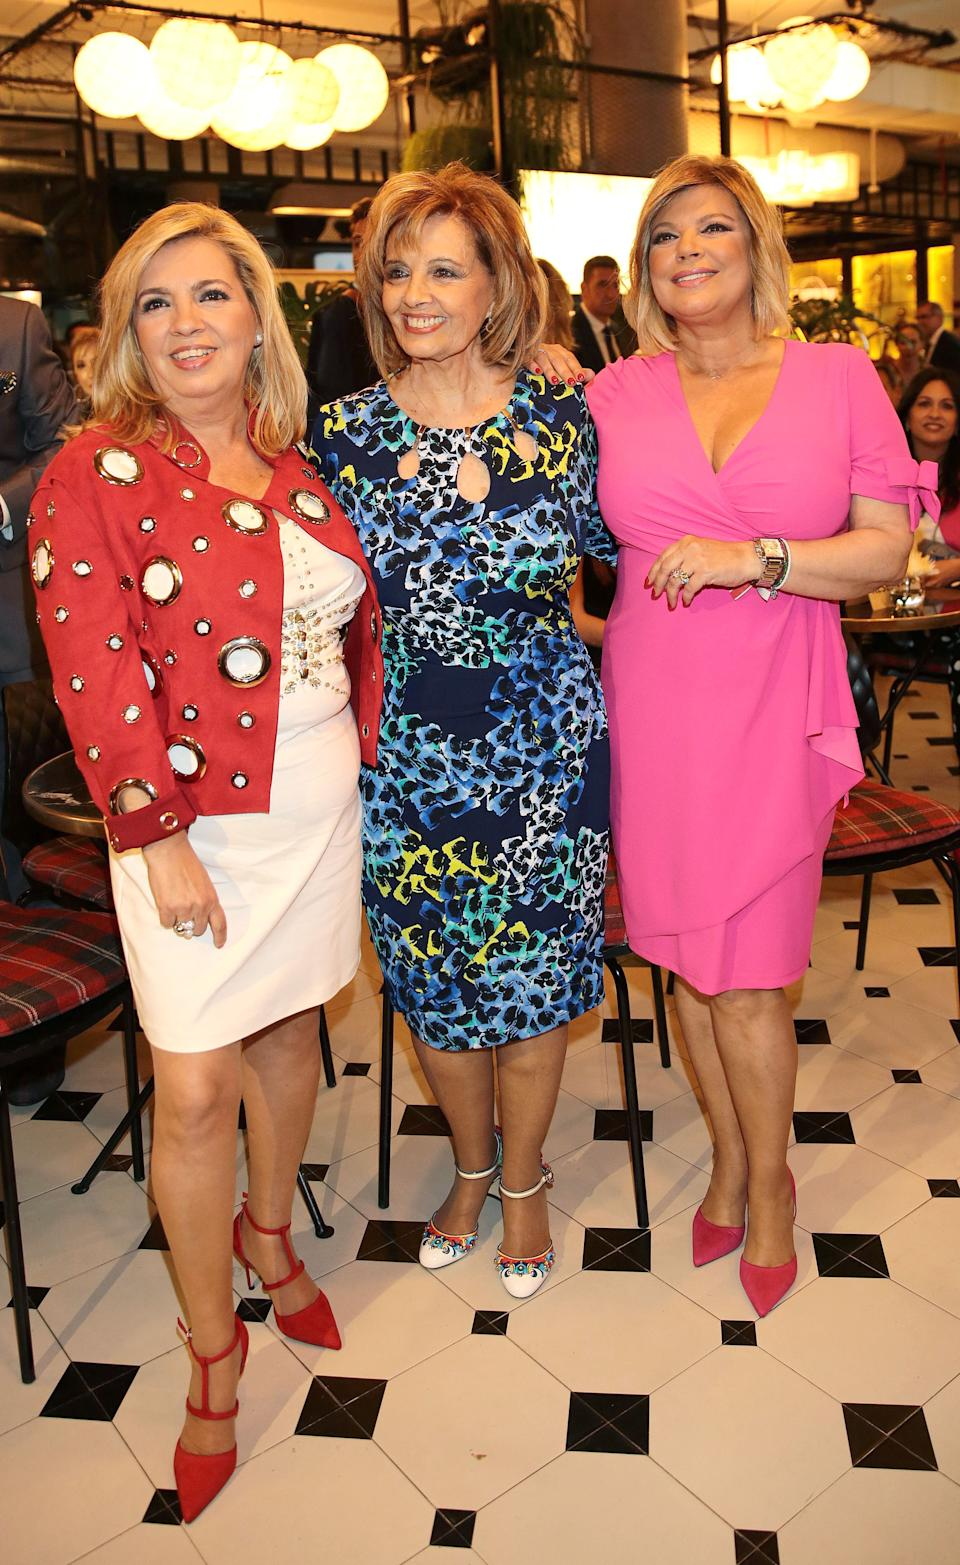 MADRID, SPAIN - MAY 23:  Maria Teresa Campos (C) and Carmen Borrego (L) attend the presentation of the launching of Terelu Campos's (R )first jewellry collection 'TRLU' on May 23, 2018 in Madrid, Spain.  (Photo by Europa Press/Europa Press via Getty Images)